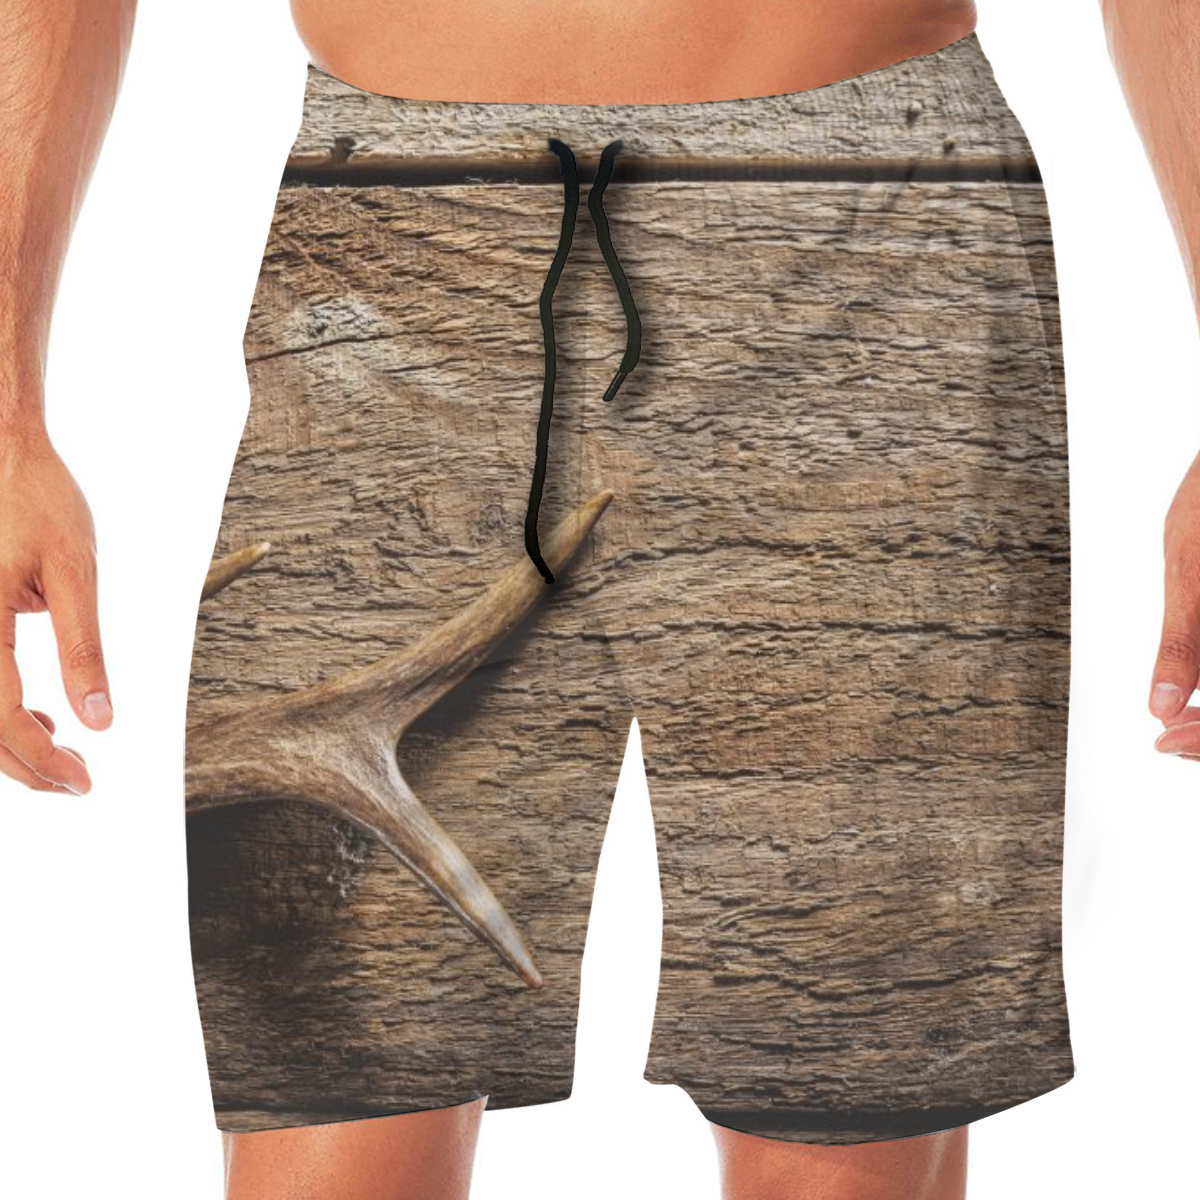 High Angle Deer Antlers On Rustic Wooden Men's Beach Pants Quick Drying Beach Shorts Swimming Surfing Boating Water Sport Trunks